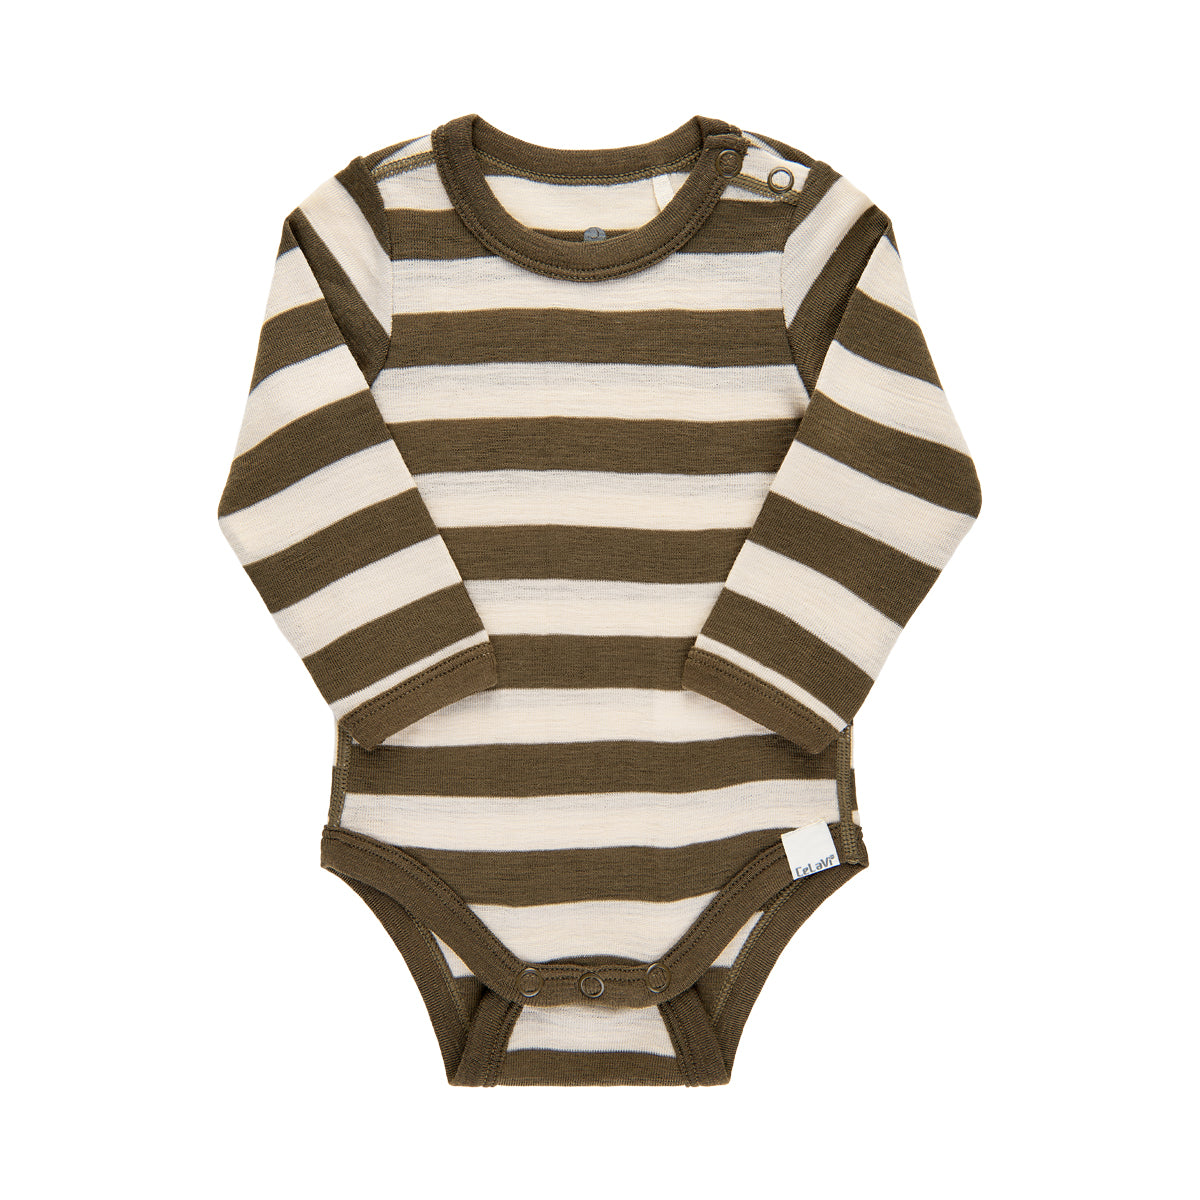 CeLaVi merinovilla stripes body, olive